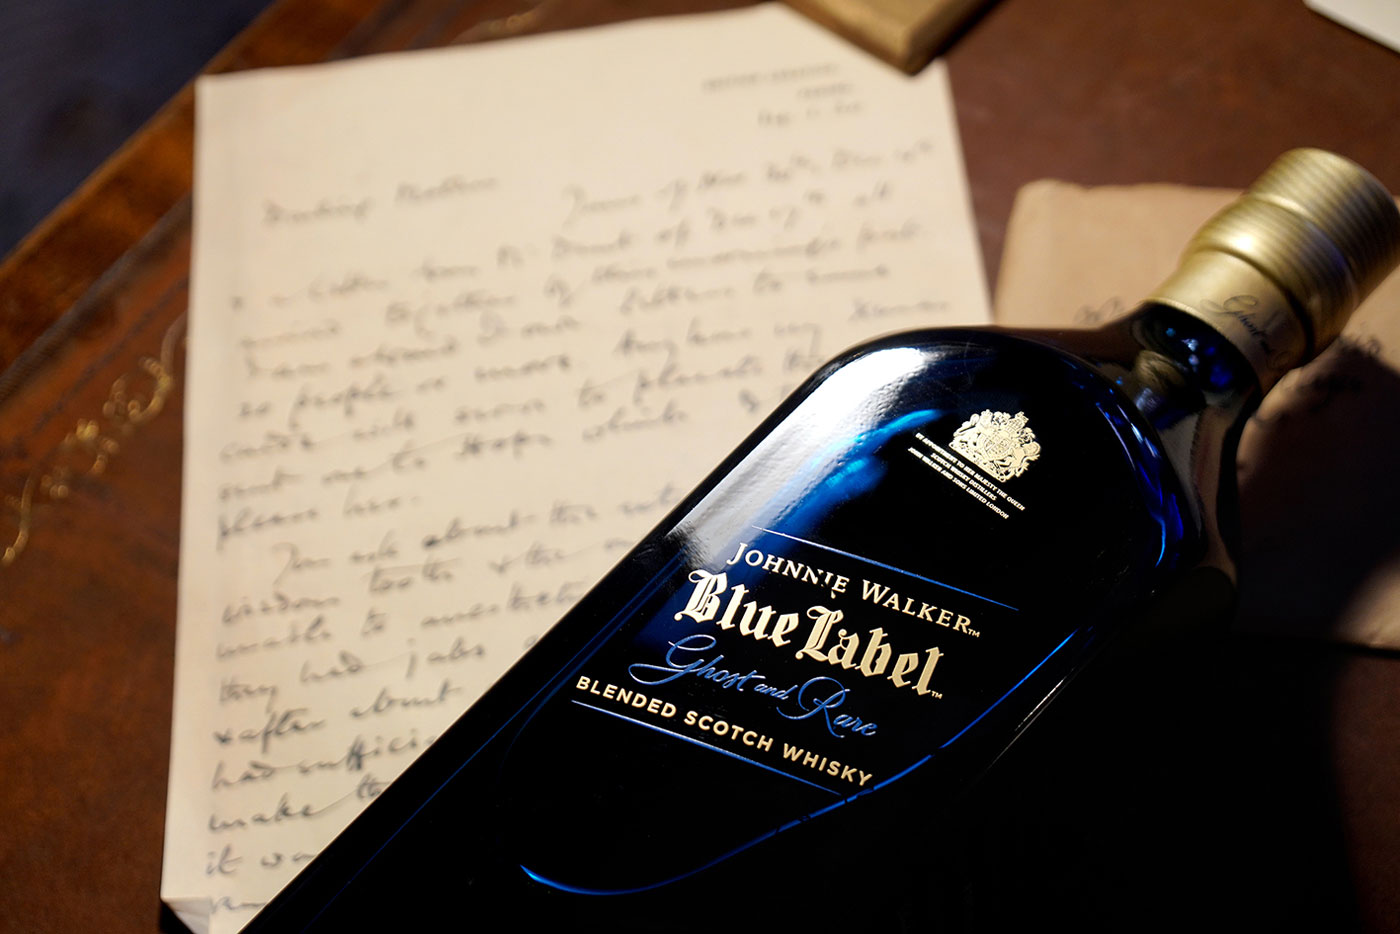 JOHNNIE WALKER BLUE LABEL GHOST